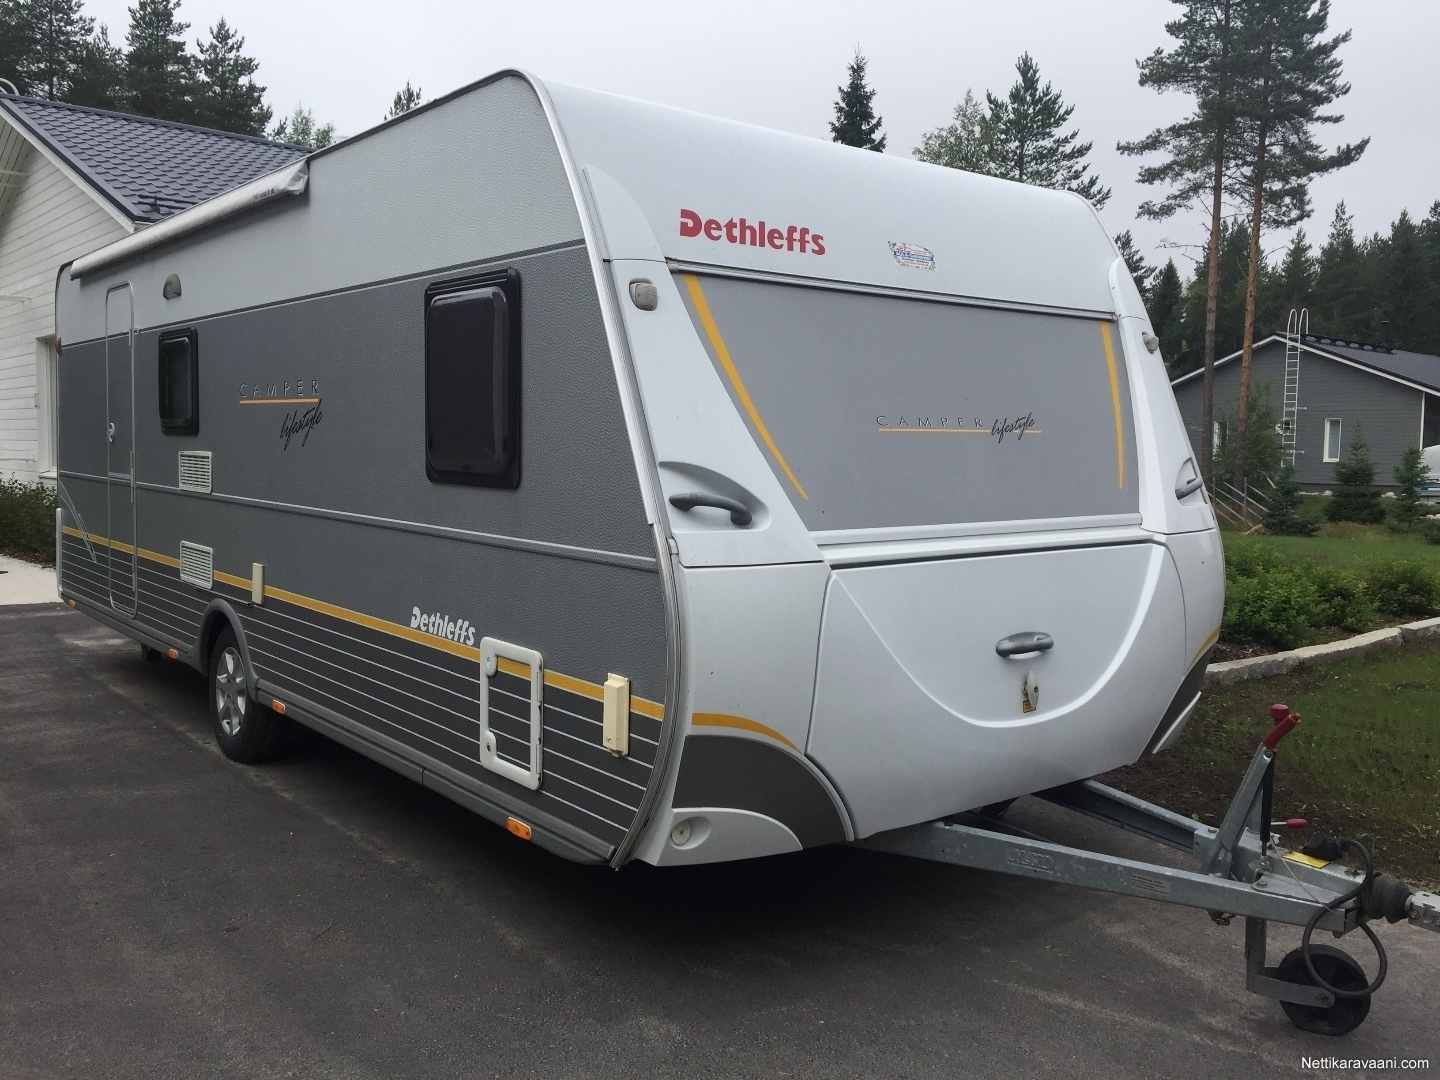 dethleffs camper lifestyle 560sk 2009 travel box nettikaravaani. Black Bedroom Furniture Sets. Home Design Ideas